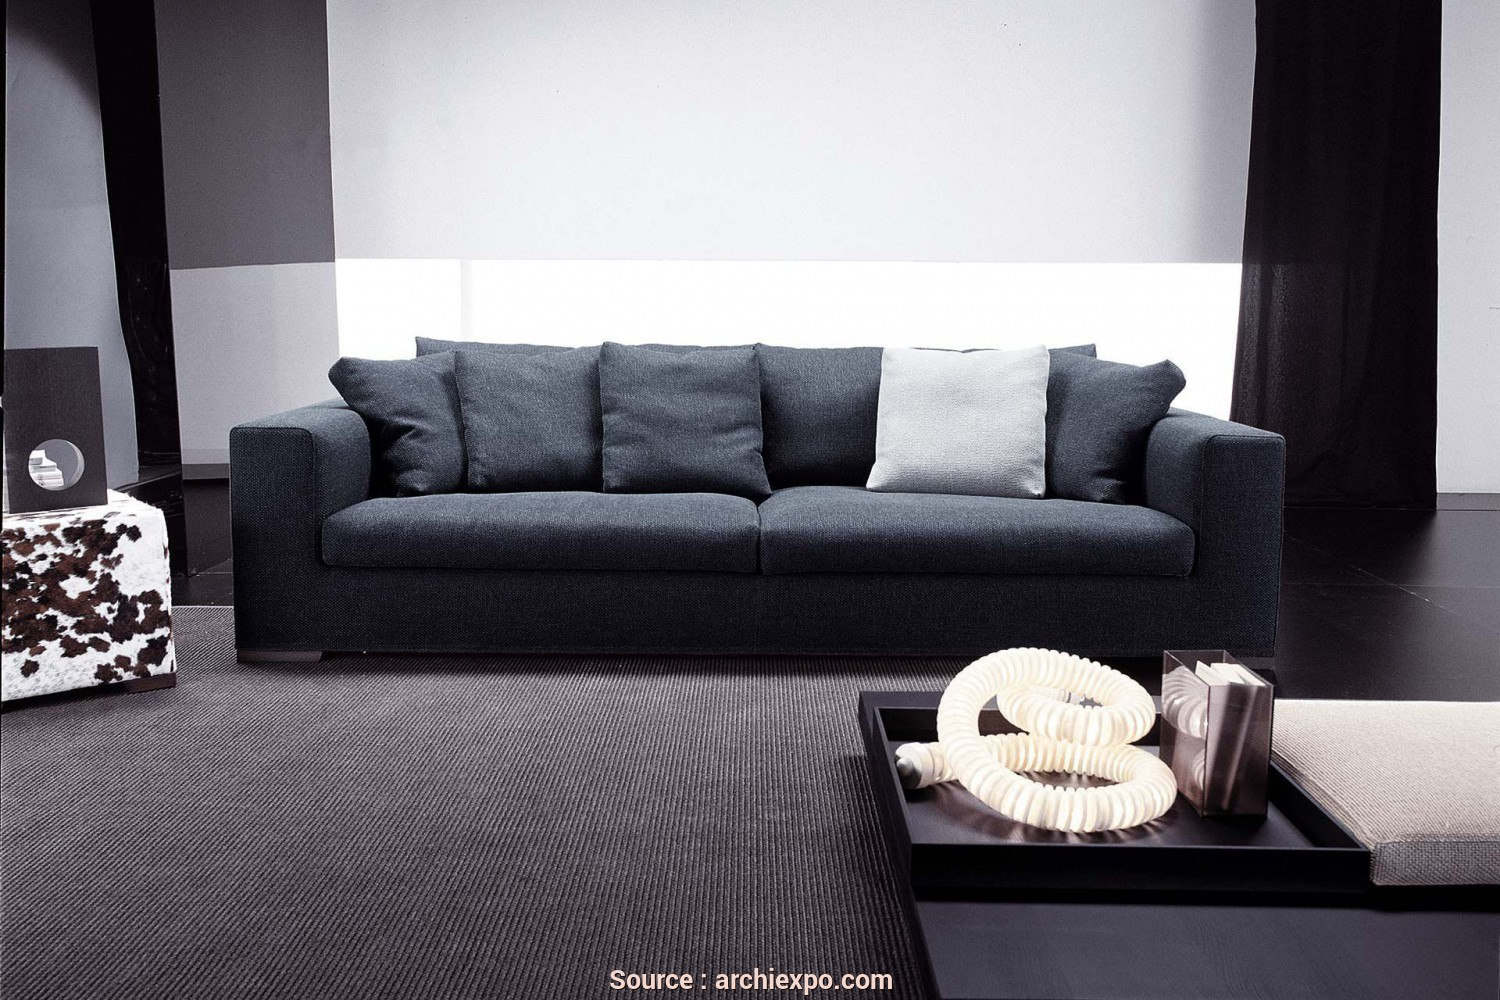 Cim Salotti Sense, Bello Modular Sofa / Contemporary / Fabric / Leather, ORESTE, Frigerio